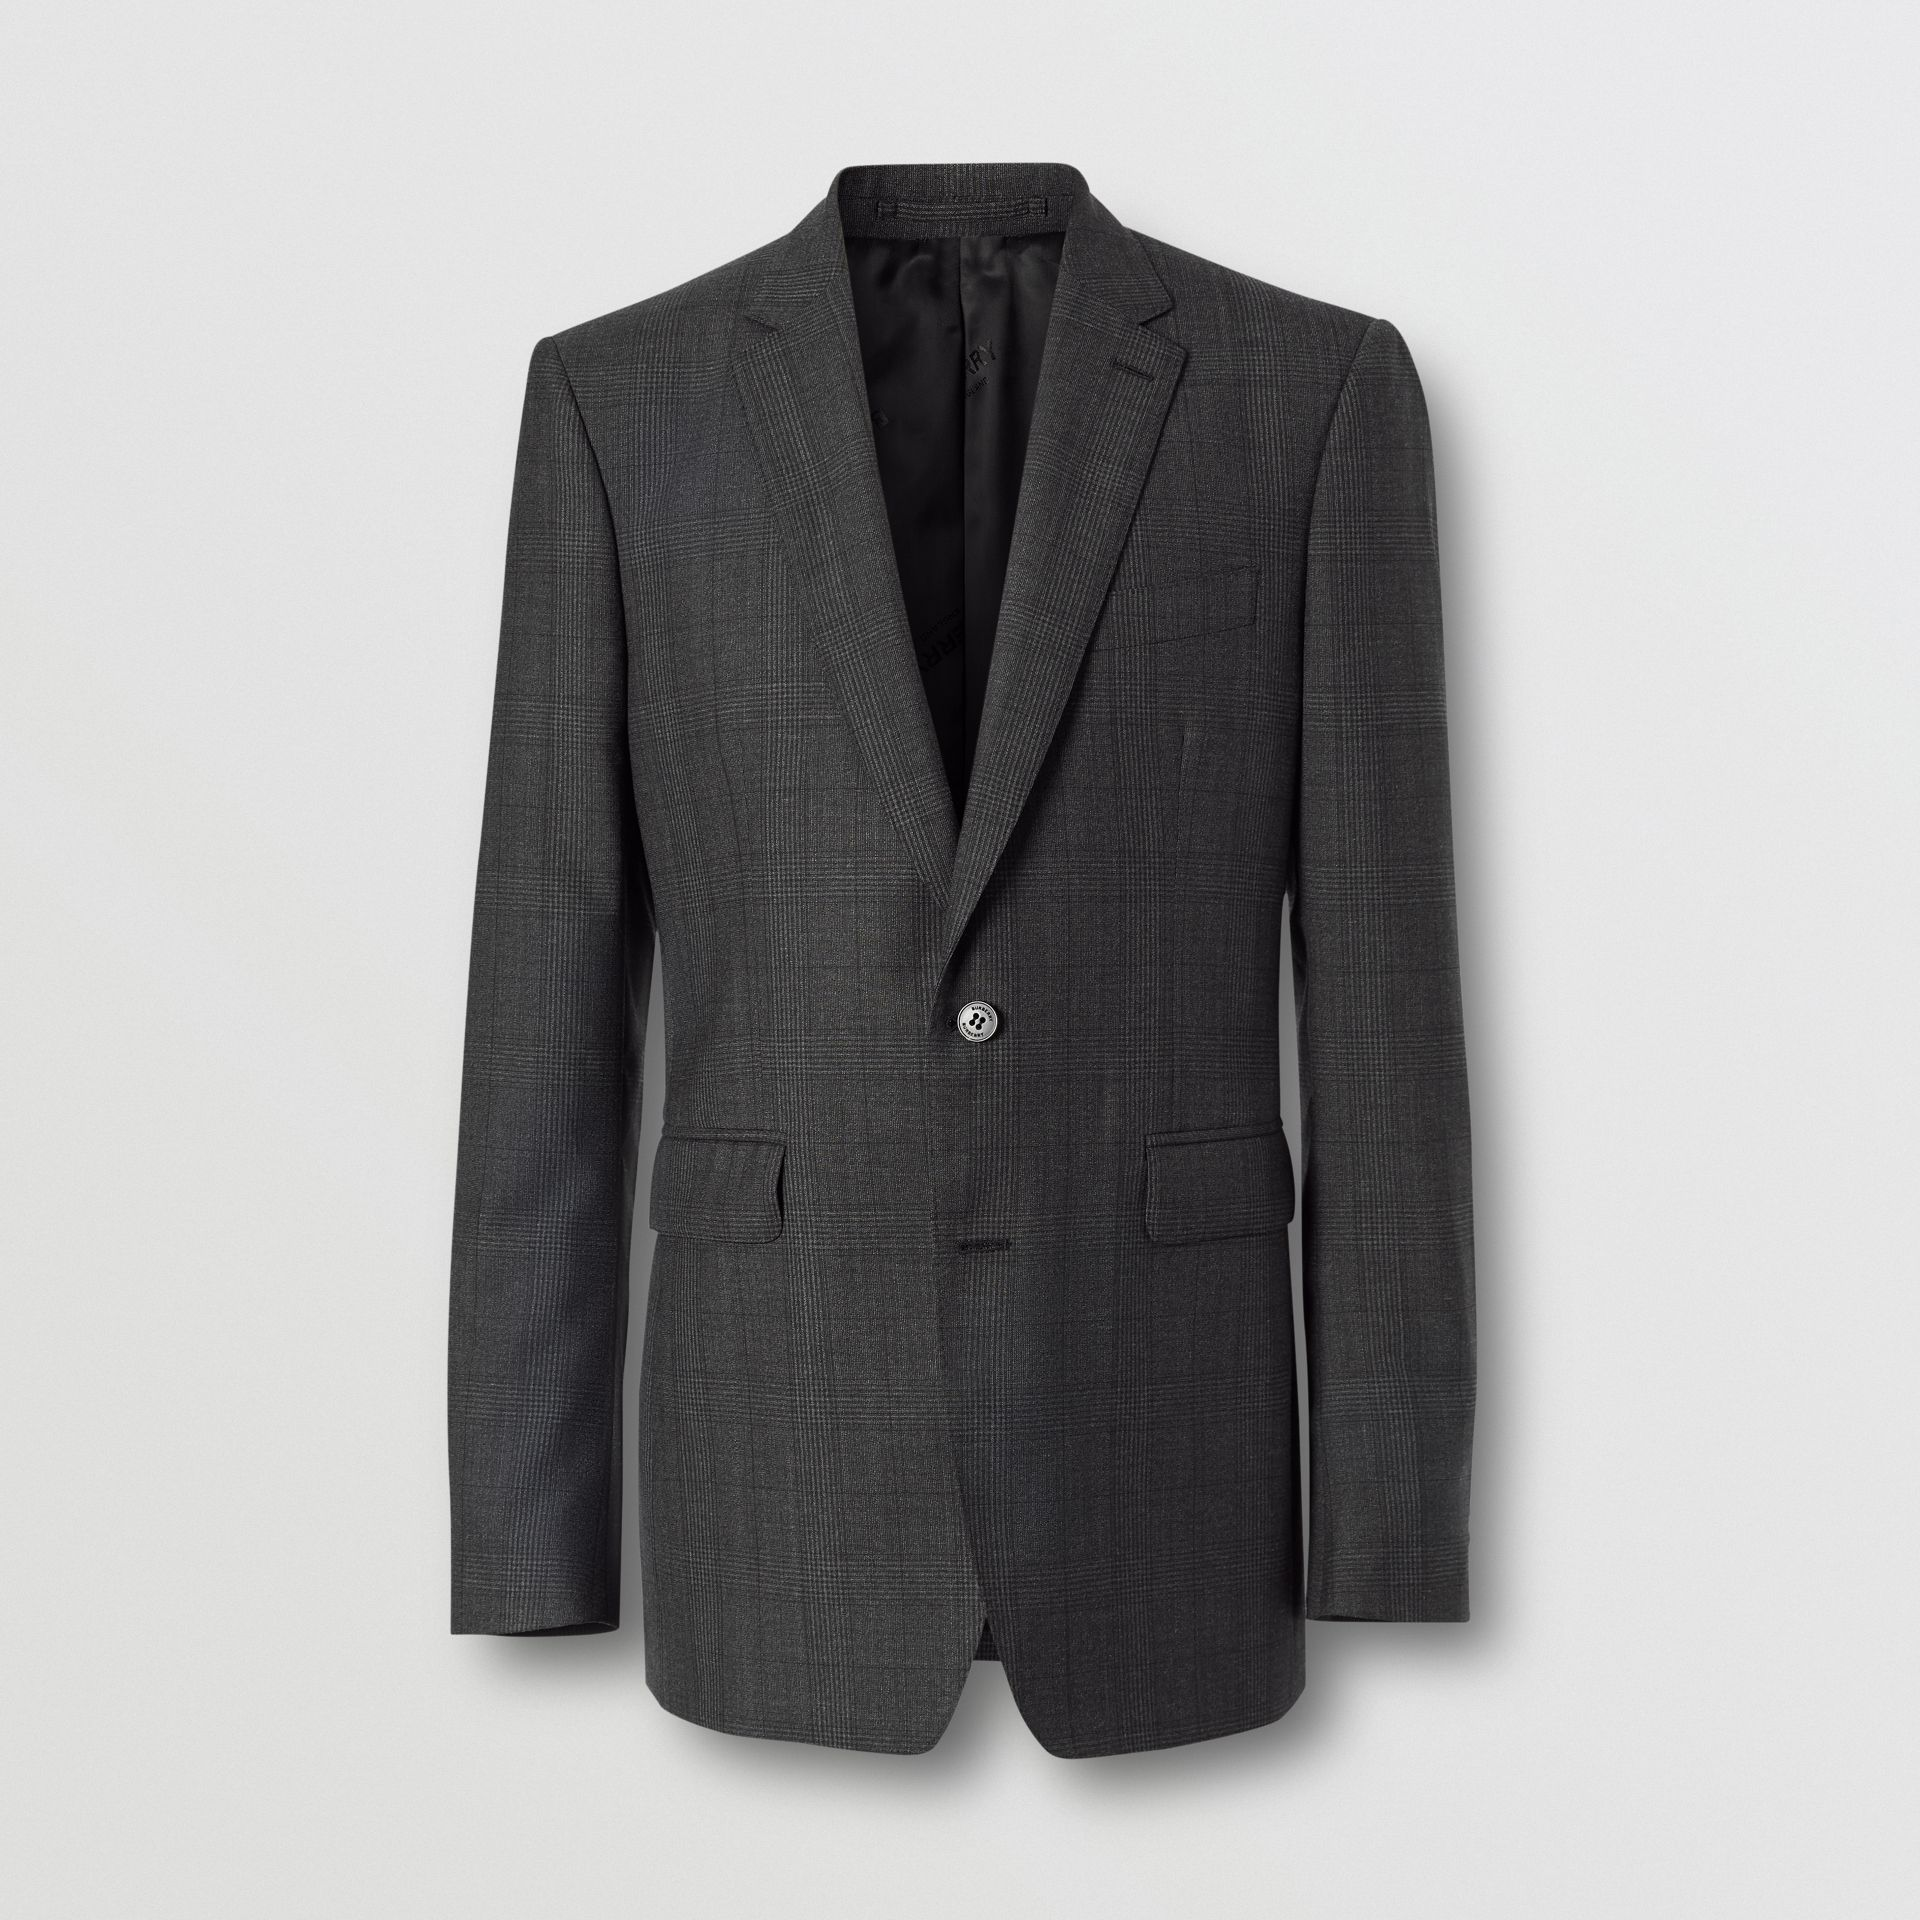 Classic Fit Check Wool Three-piece Suit in Charcoal Melange - Men | Burberry - gallery image 3